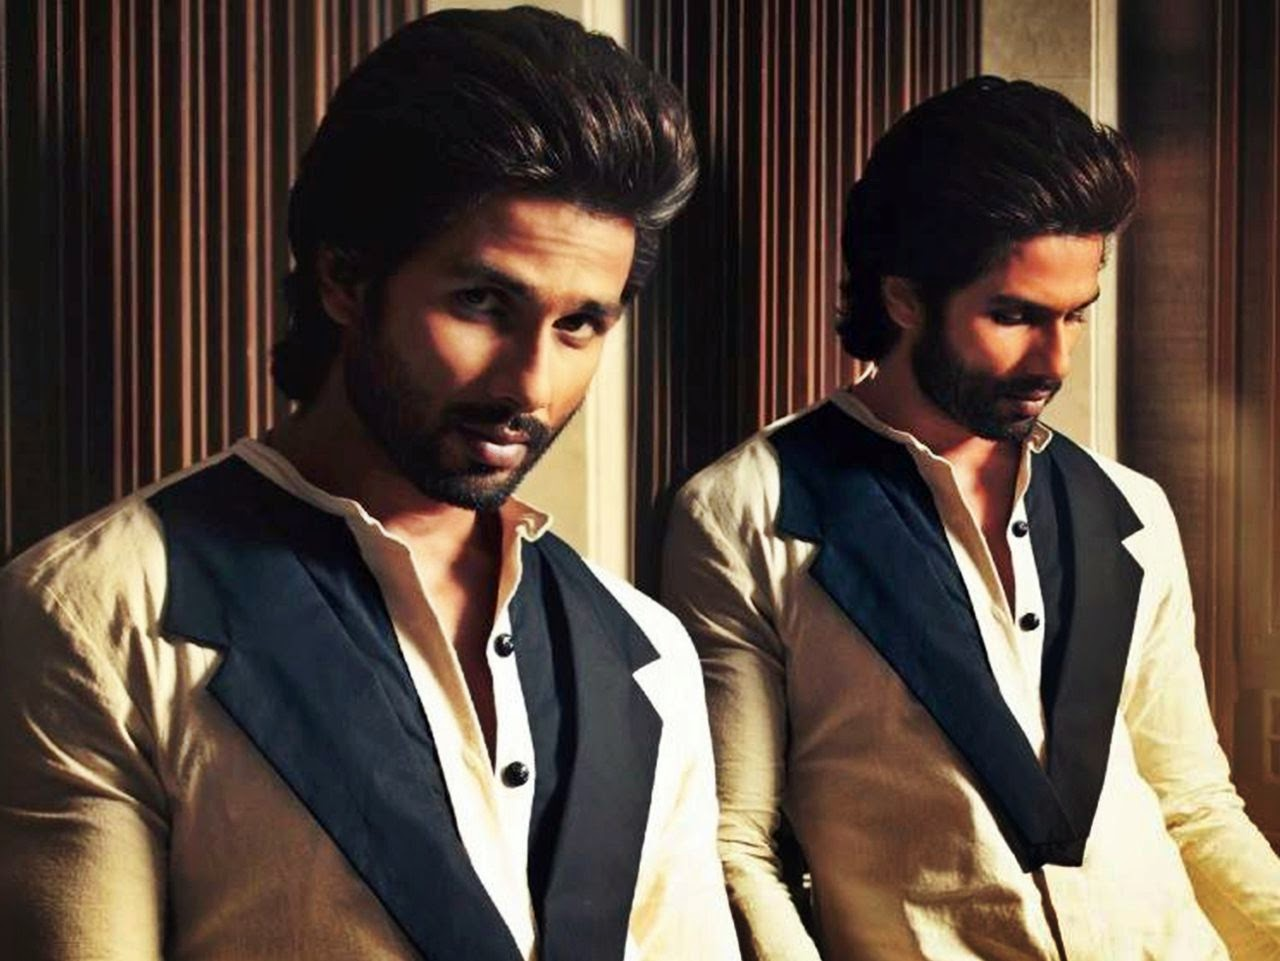 shahid kapoor hd wallpapers free download - lab4photo